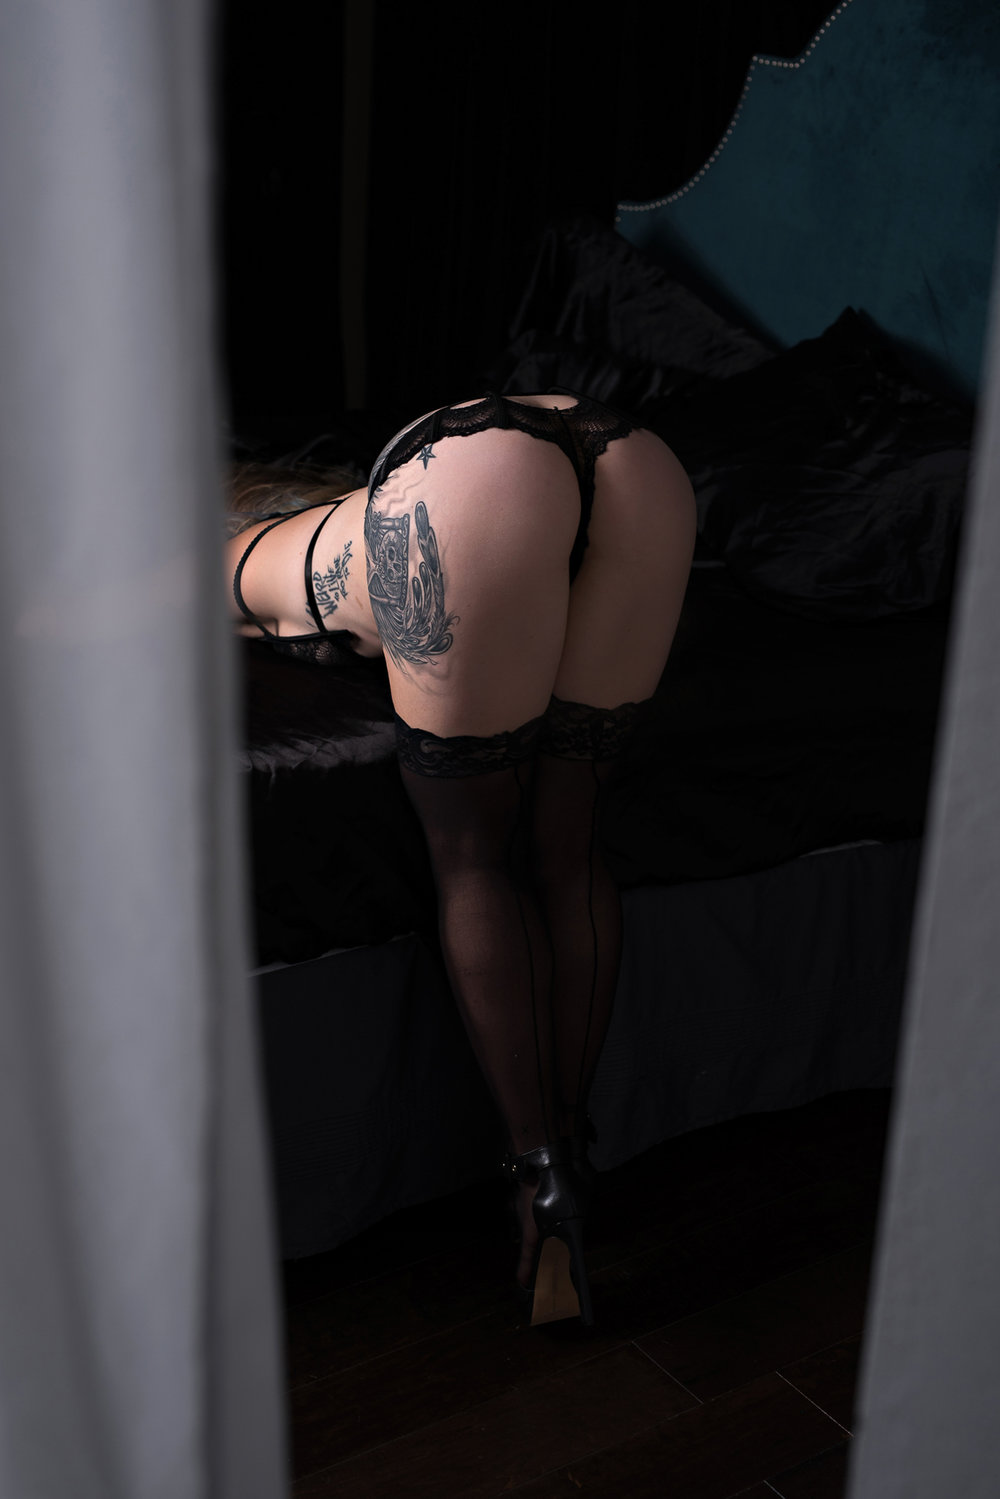 Steampunk boudoir session photo of tattooed woman wearing black lingerie and stockings